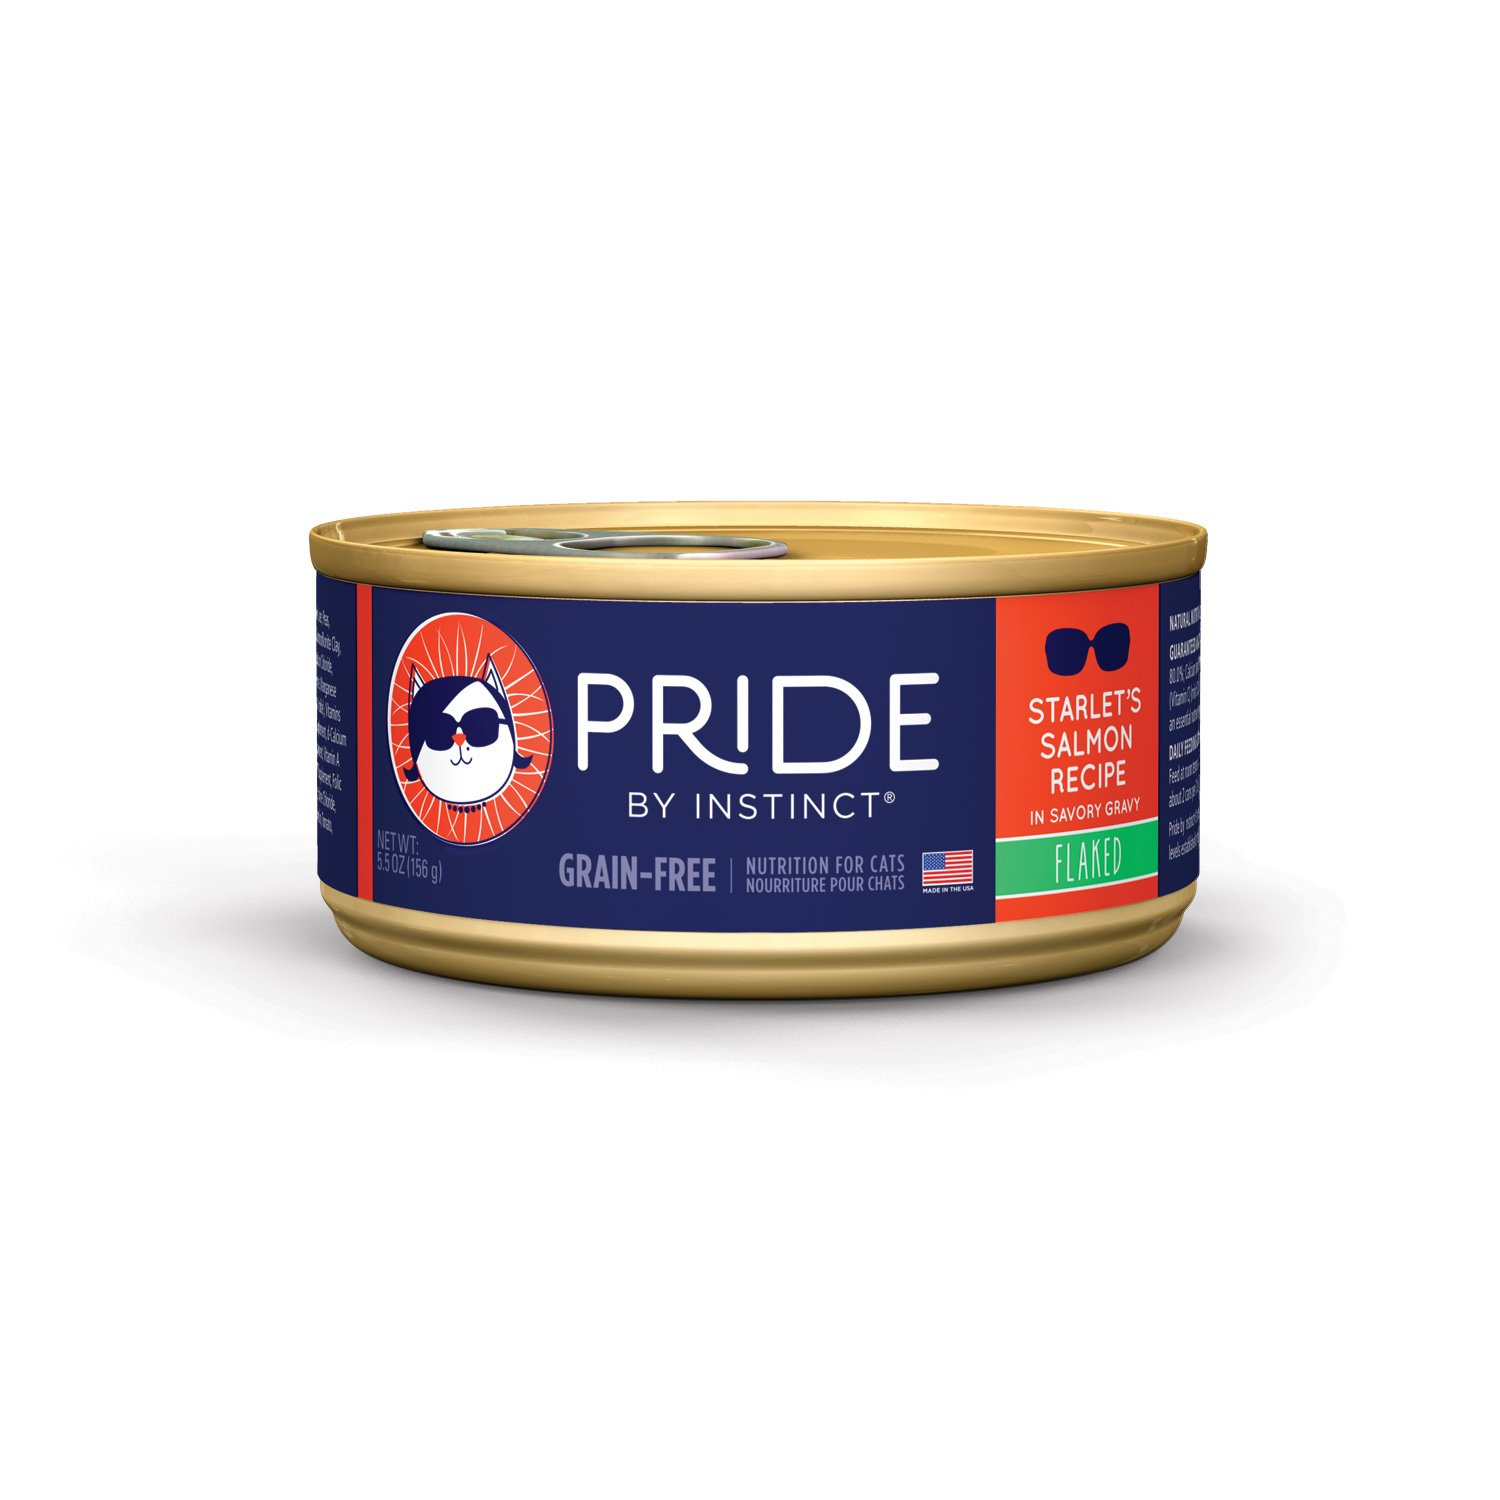 Nature's Variety Pride by Instinct Grain-Free Flaked Starlet's Salmon Canned Cat Food